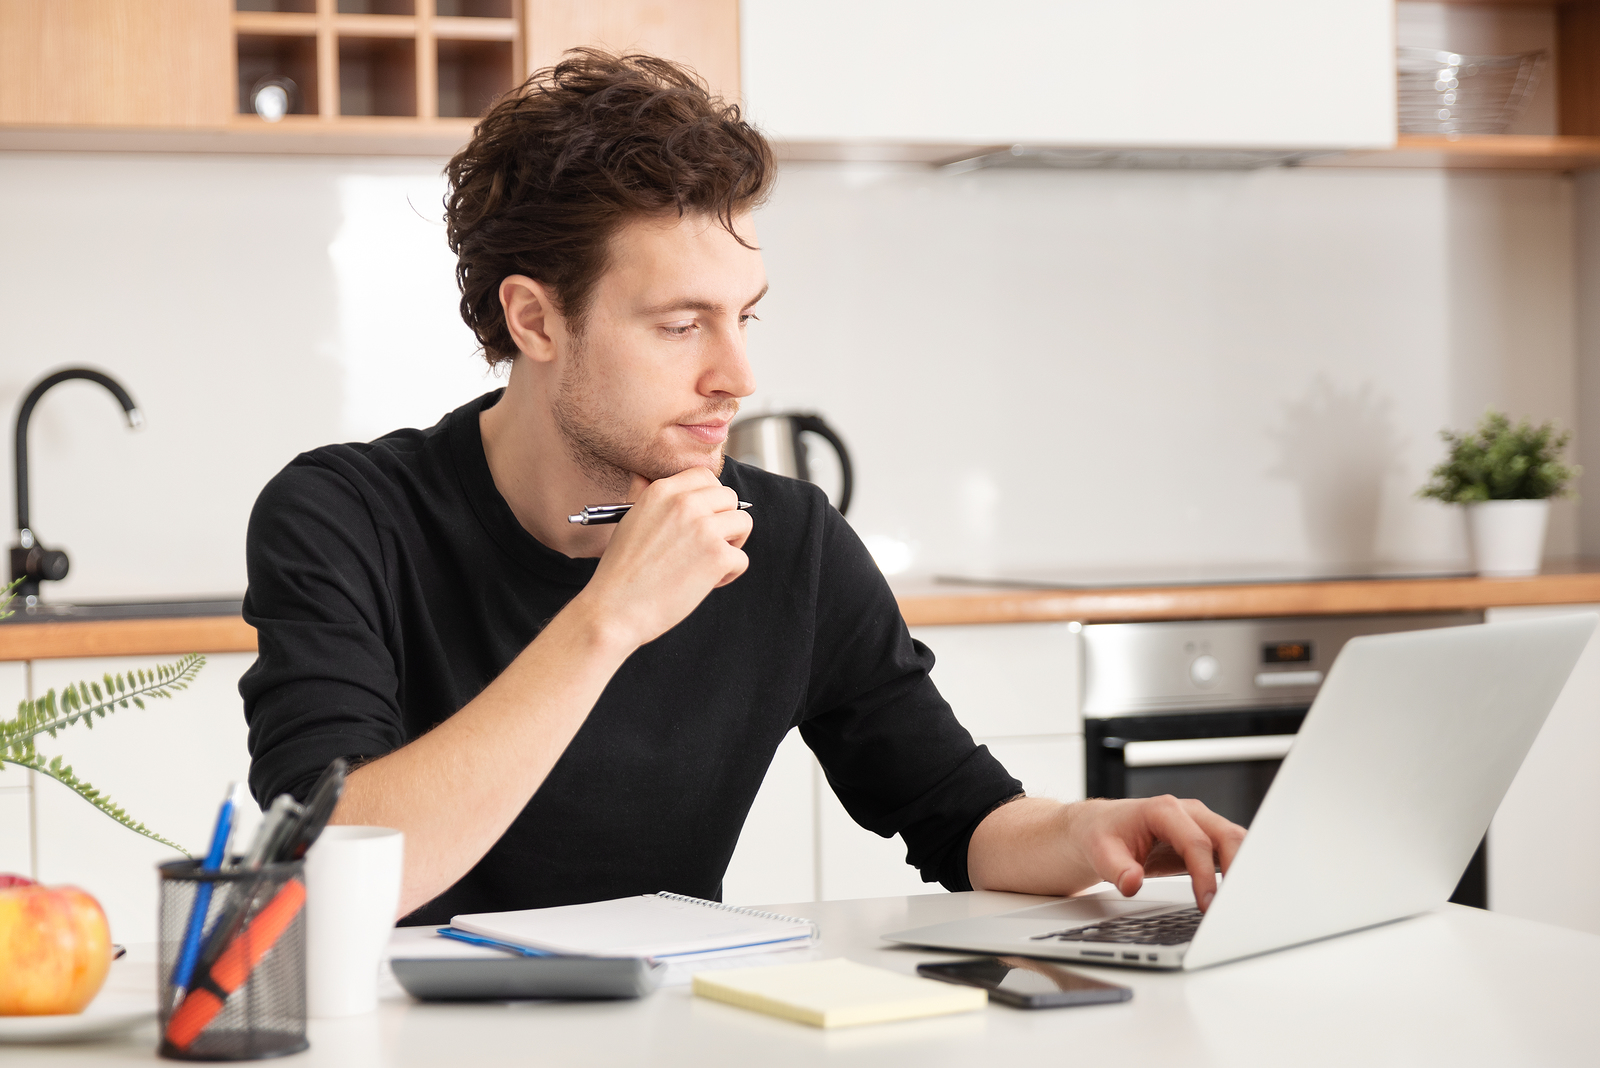 AskanExpert: Should I Pay Off a Debt in Collections and Will it Help My Credit?